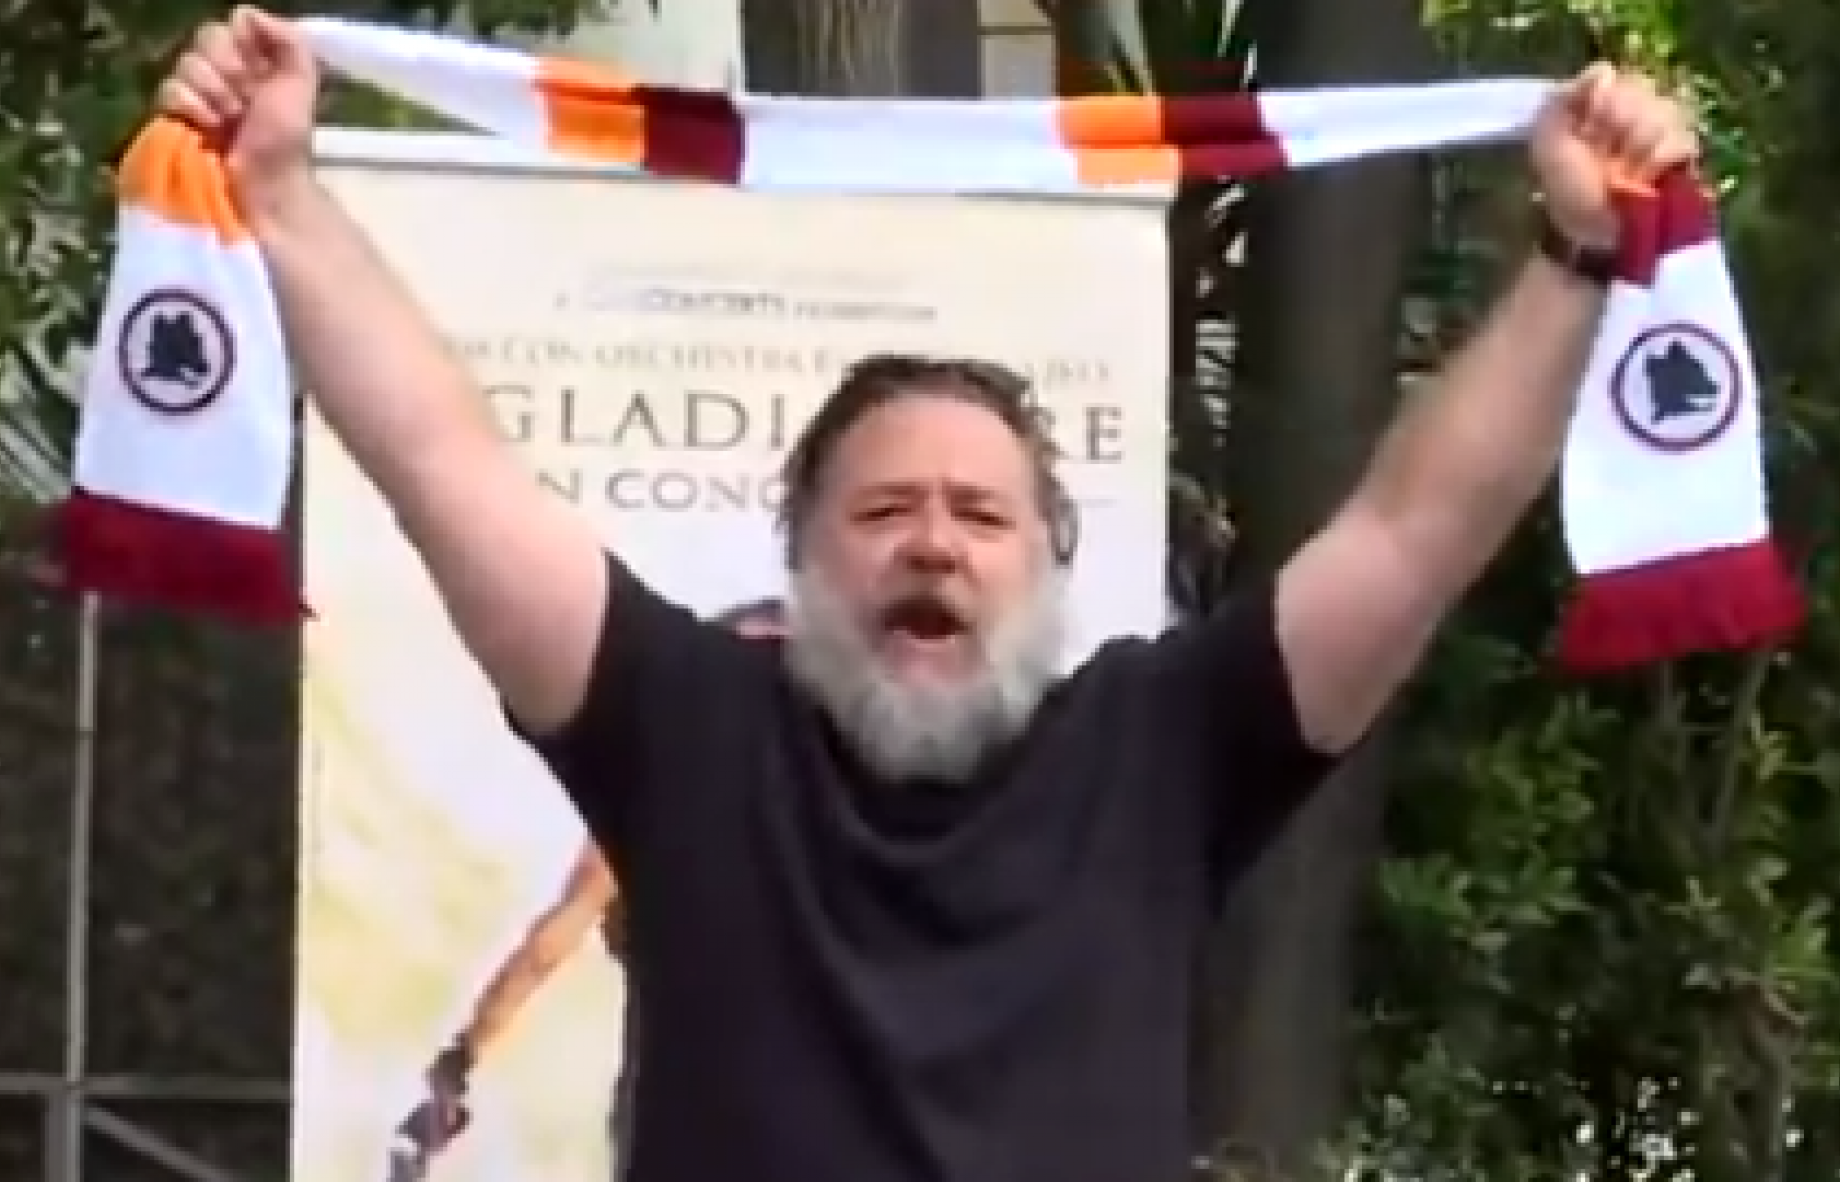 Il Gladiatore in concerto, arriva Russell Crowe